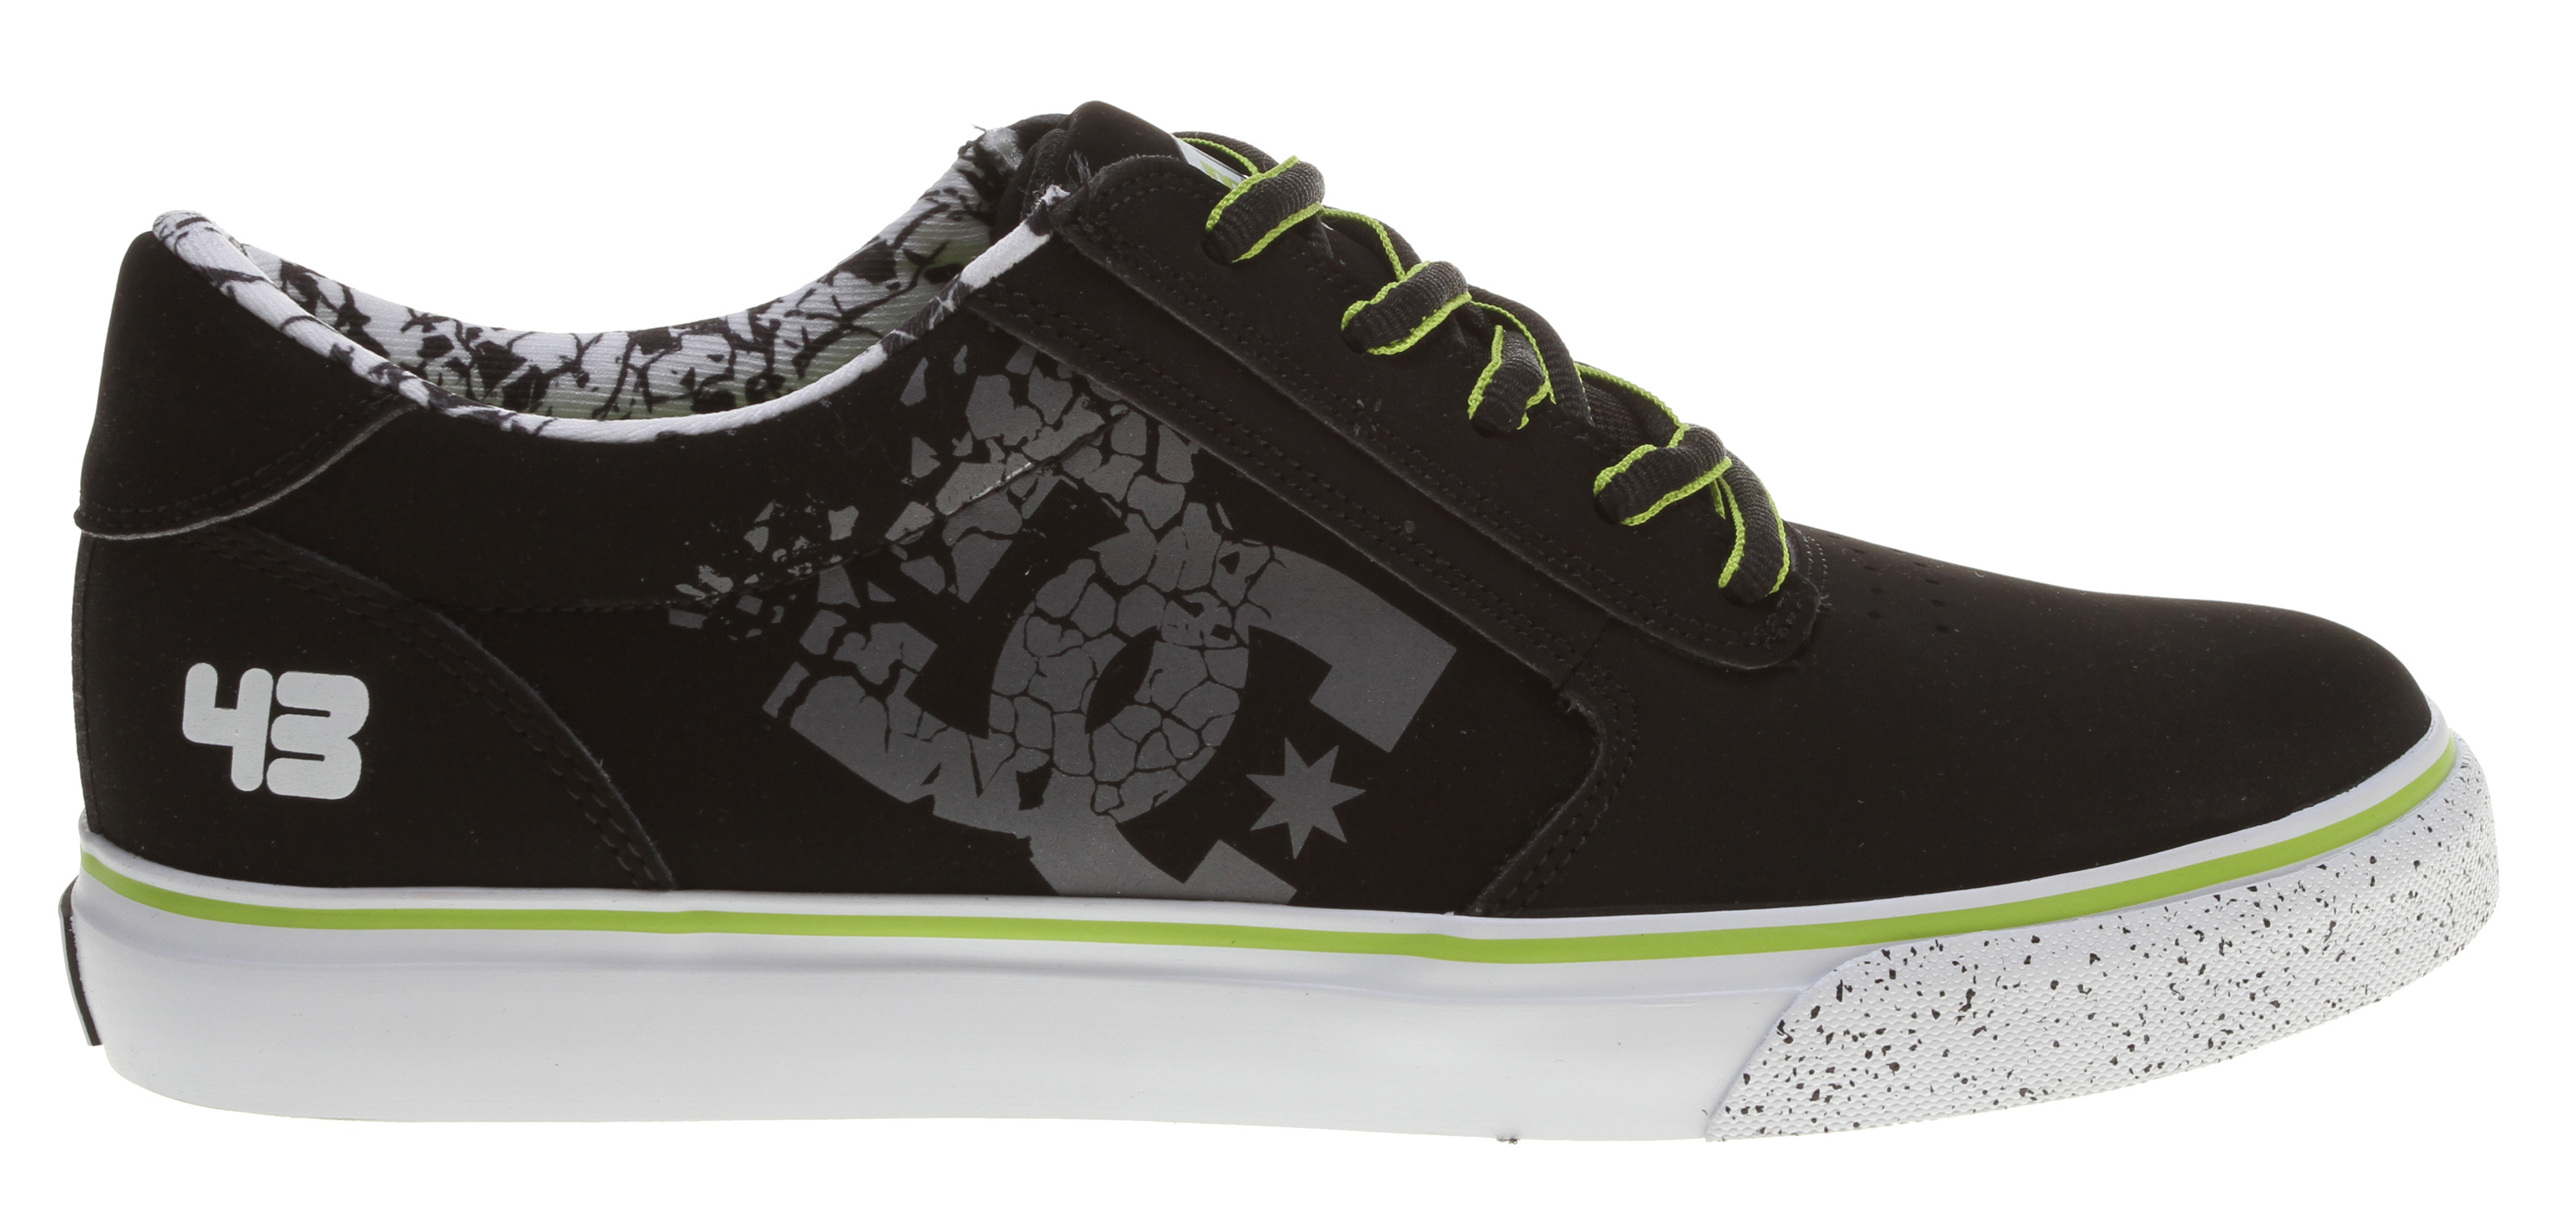 Skateboard Skate like the pros in the DC Shoes Gatsby 2 skate shoes from the Ken Block Collection.Key Features of the DC Ken Block Gatsby 2 Skate Shoes: Heavy duty suede upper Soft resilient action leather Eyelets on medial side Metal eyelets and lace locks Foam padded tongue and collar Innovative DGT rubber bottom design for enhanced board control, feel, and durability - $45.95